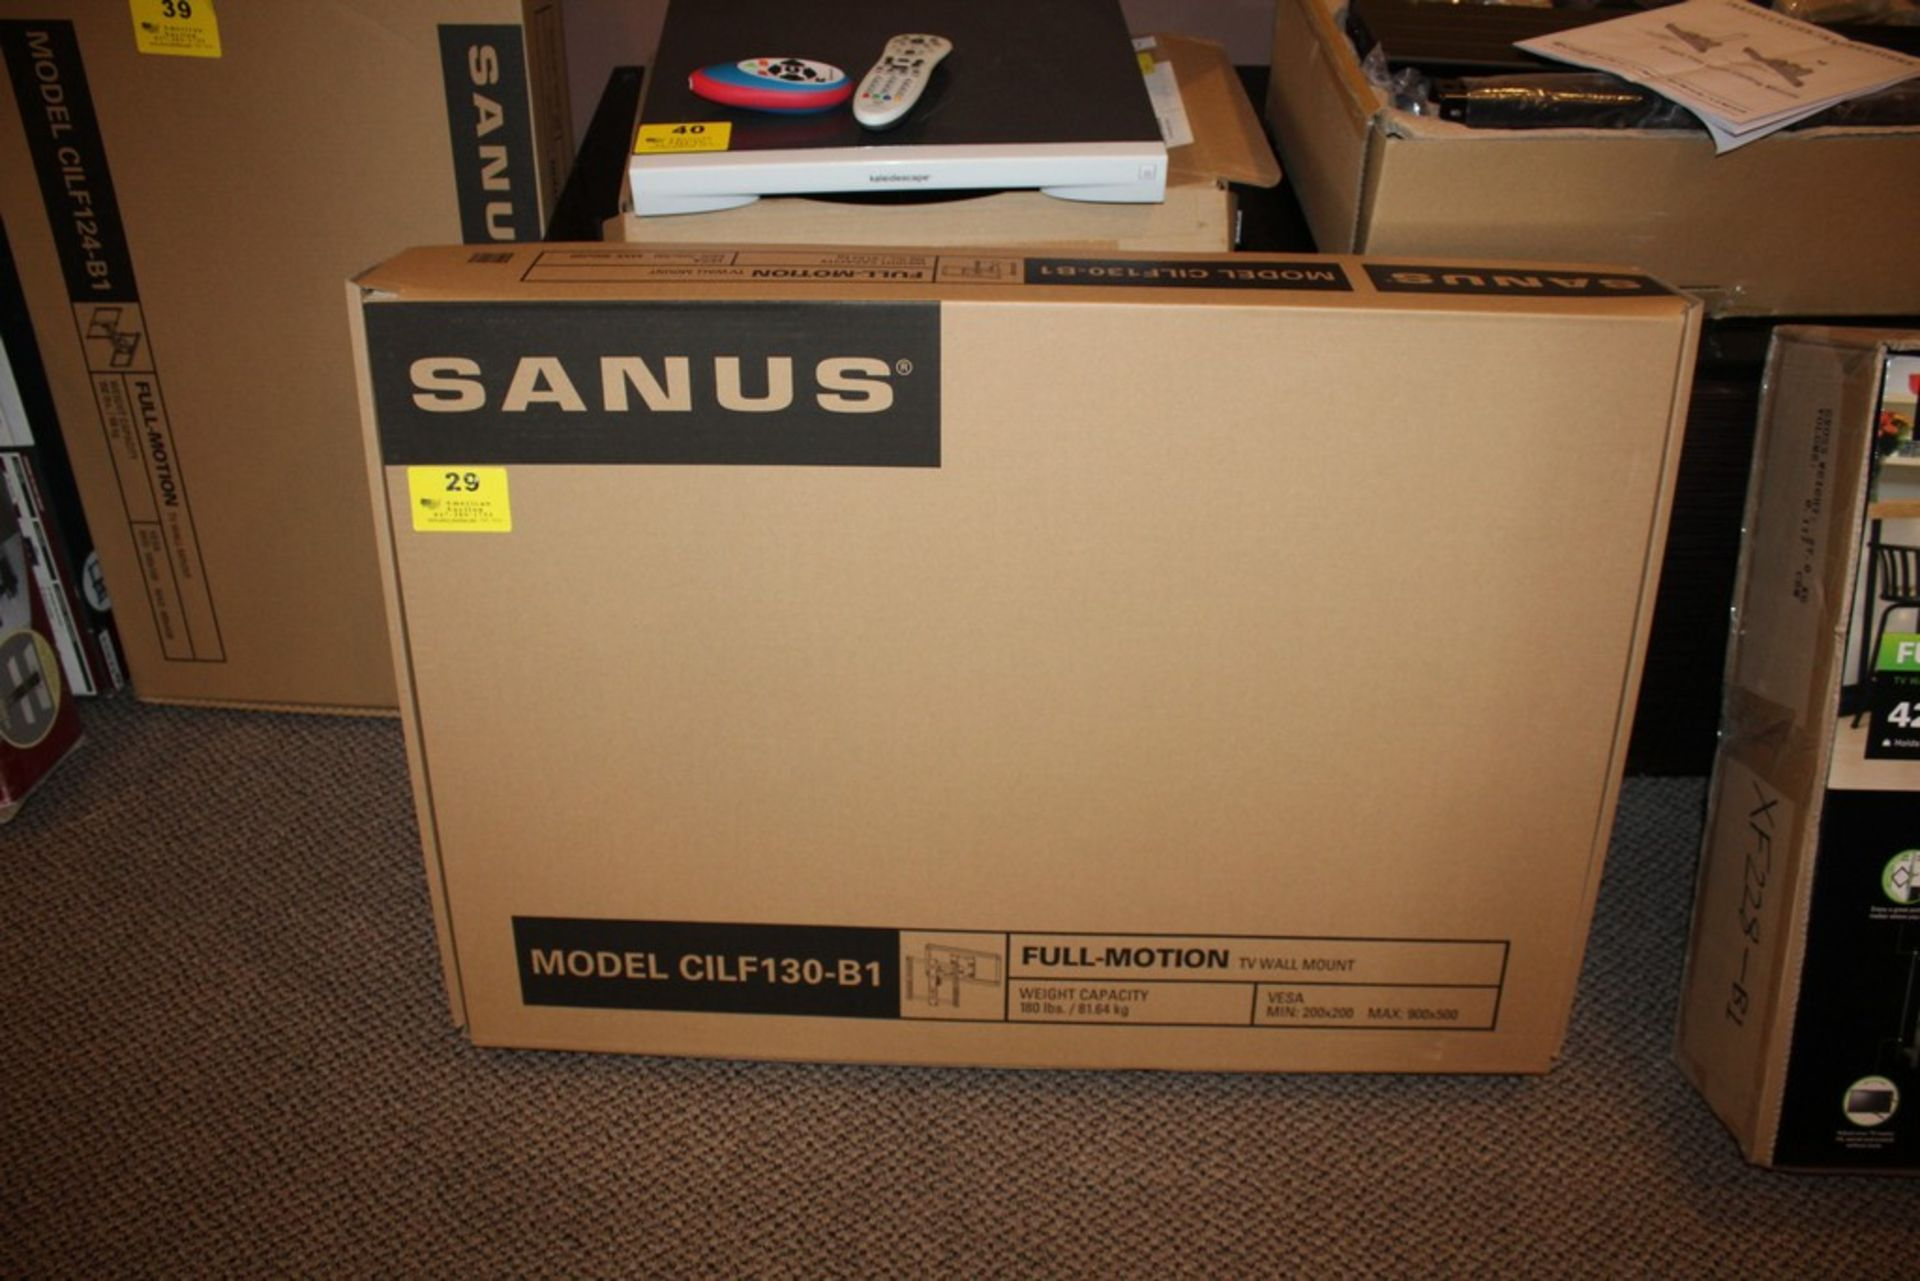 Lot 29 - SANUS MODEL CILF130-B1 FULL MOTION TV WALL MOUNT, VESA MIN: 200X200 & MAX: 900X500, UP TO 180LBS.